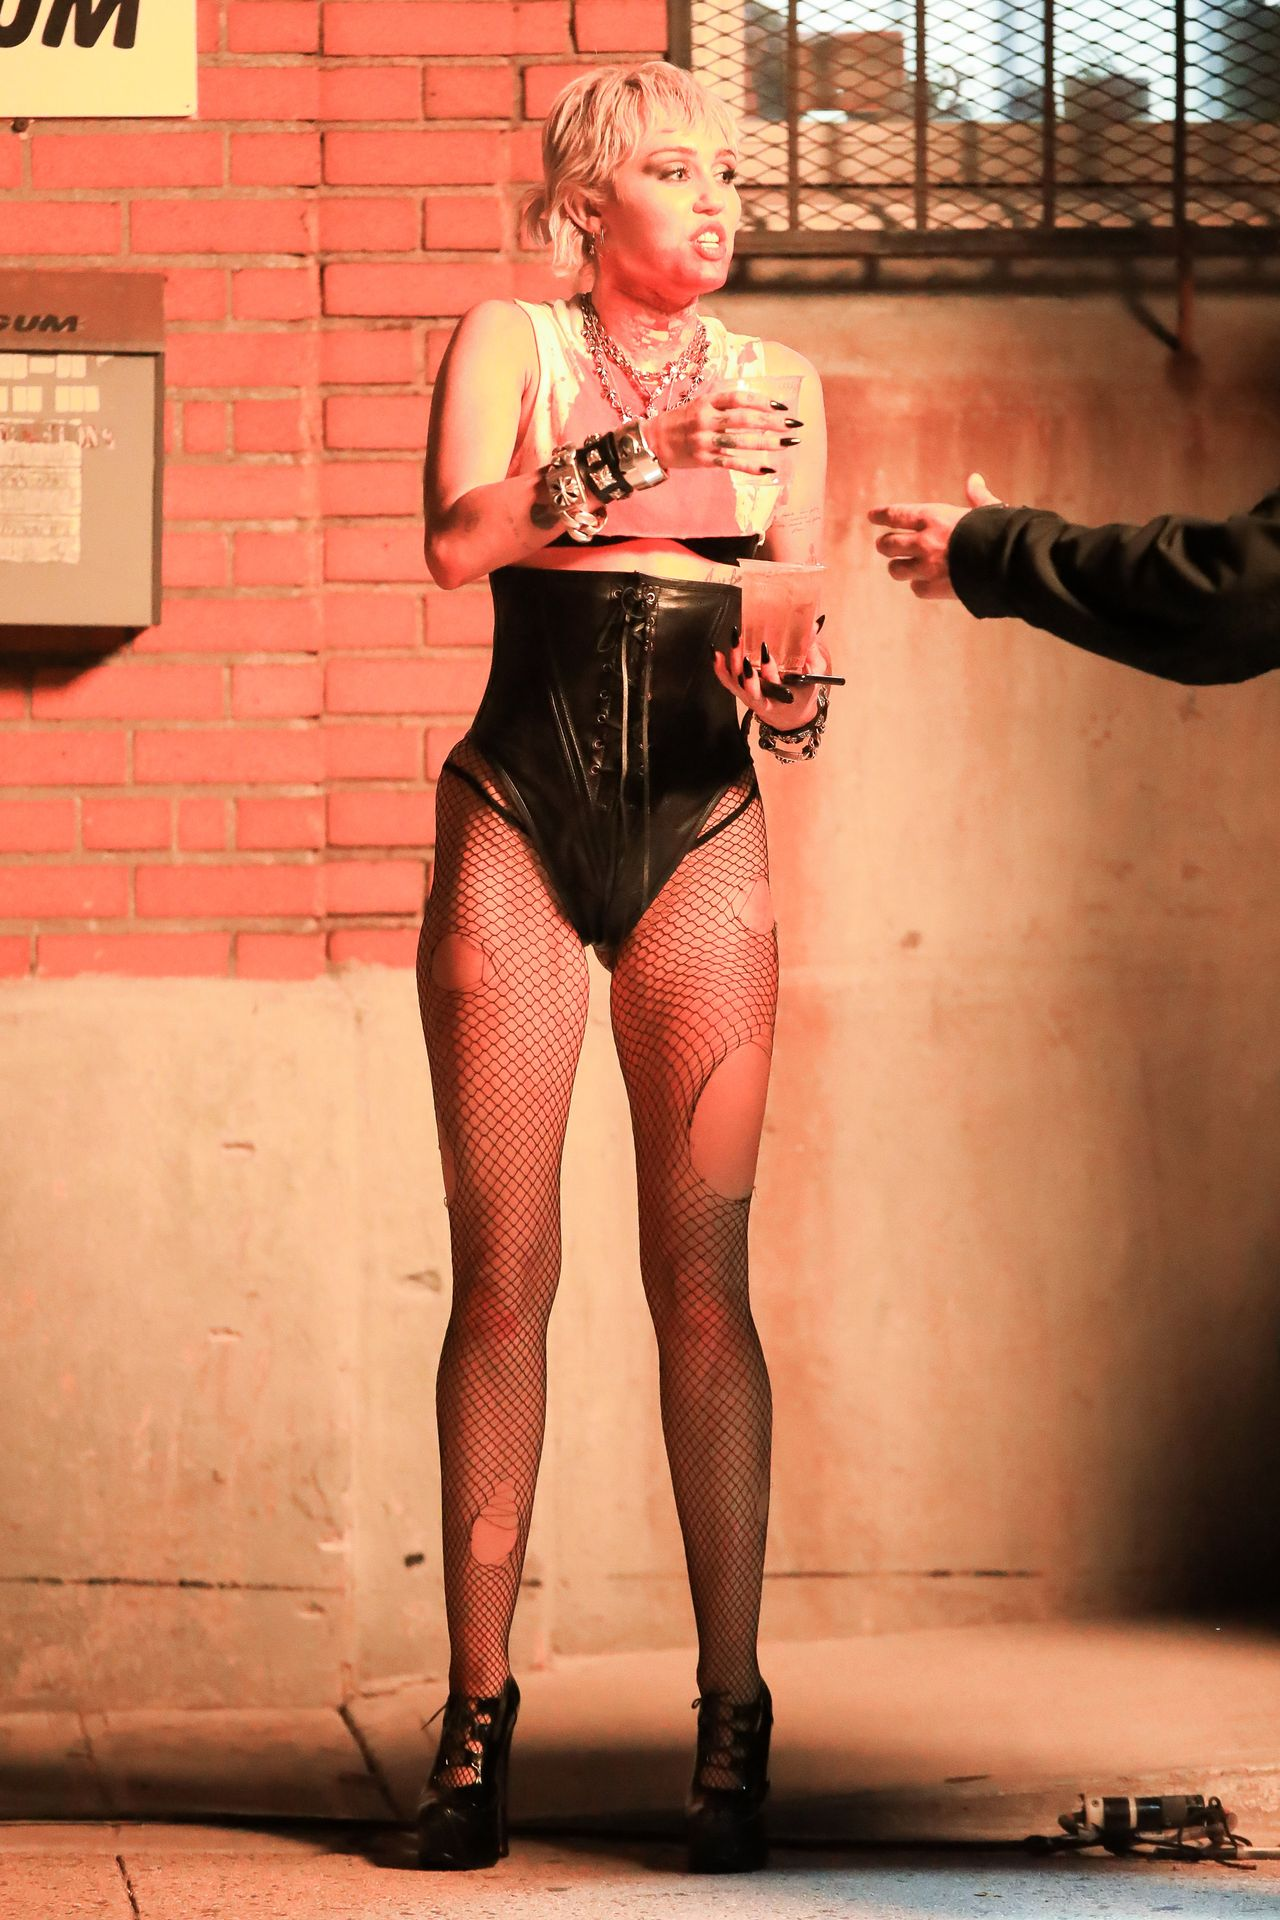 Miley-Cyrus-Sexy-The-Fappening-Blog-17.jpg